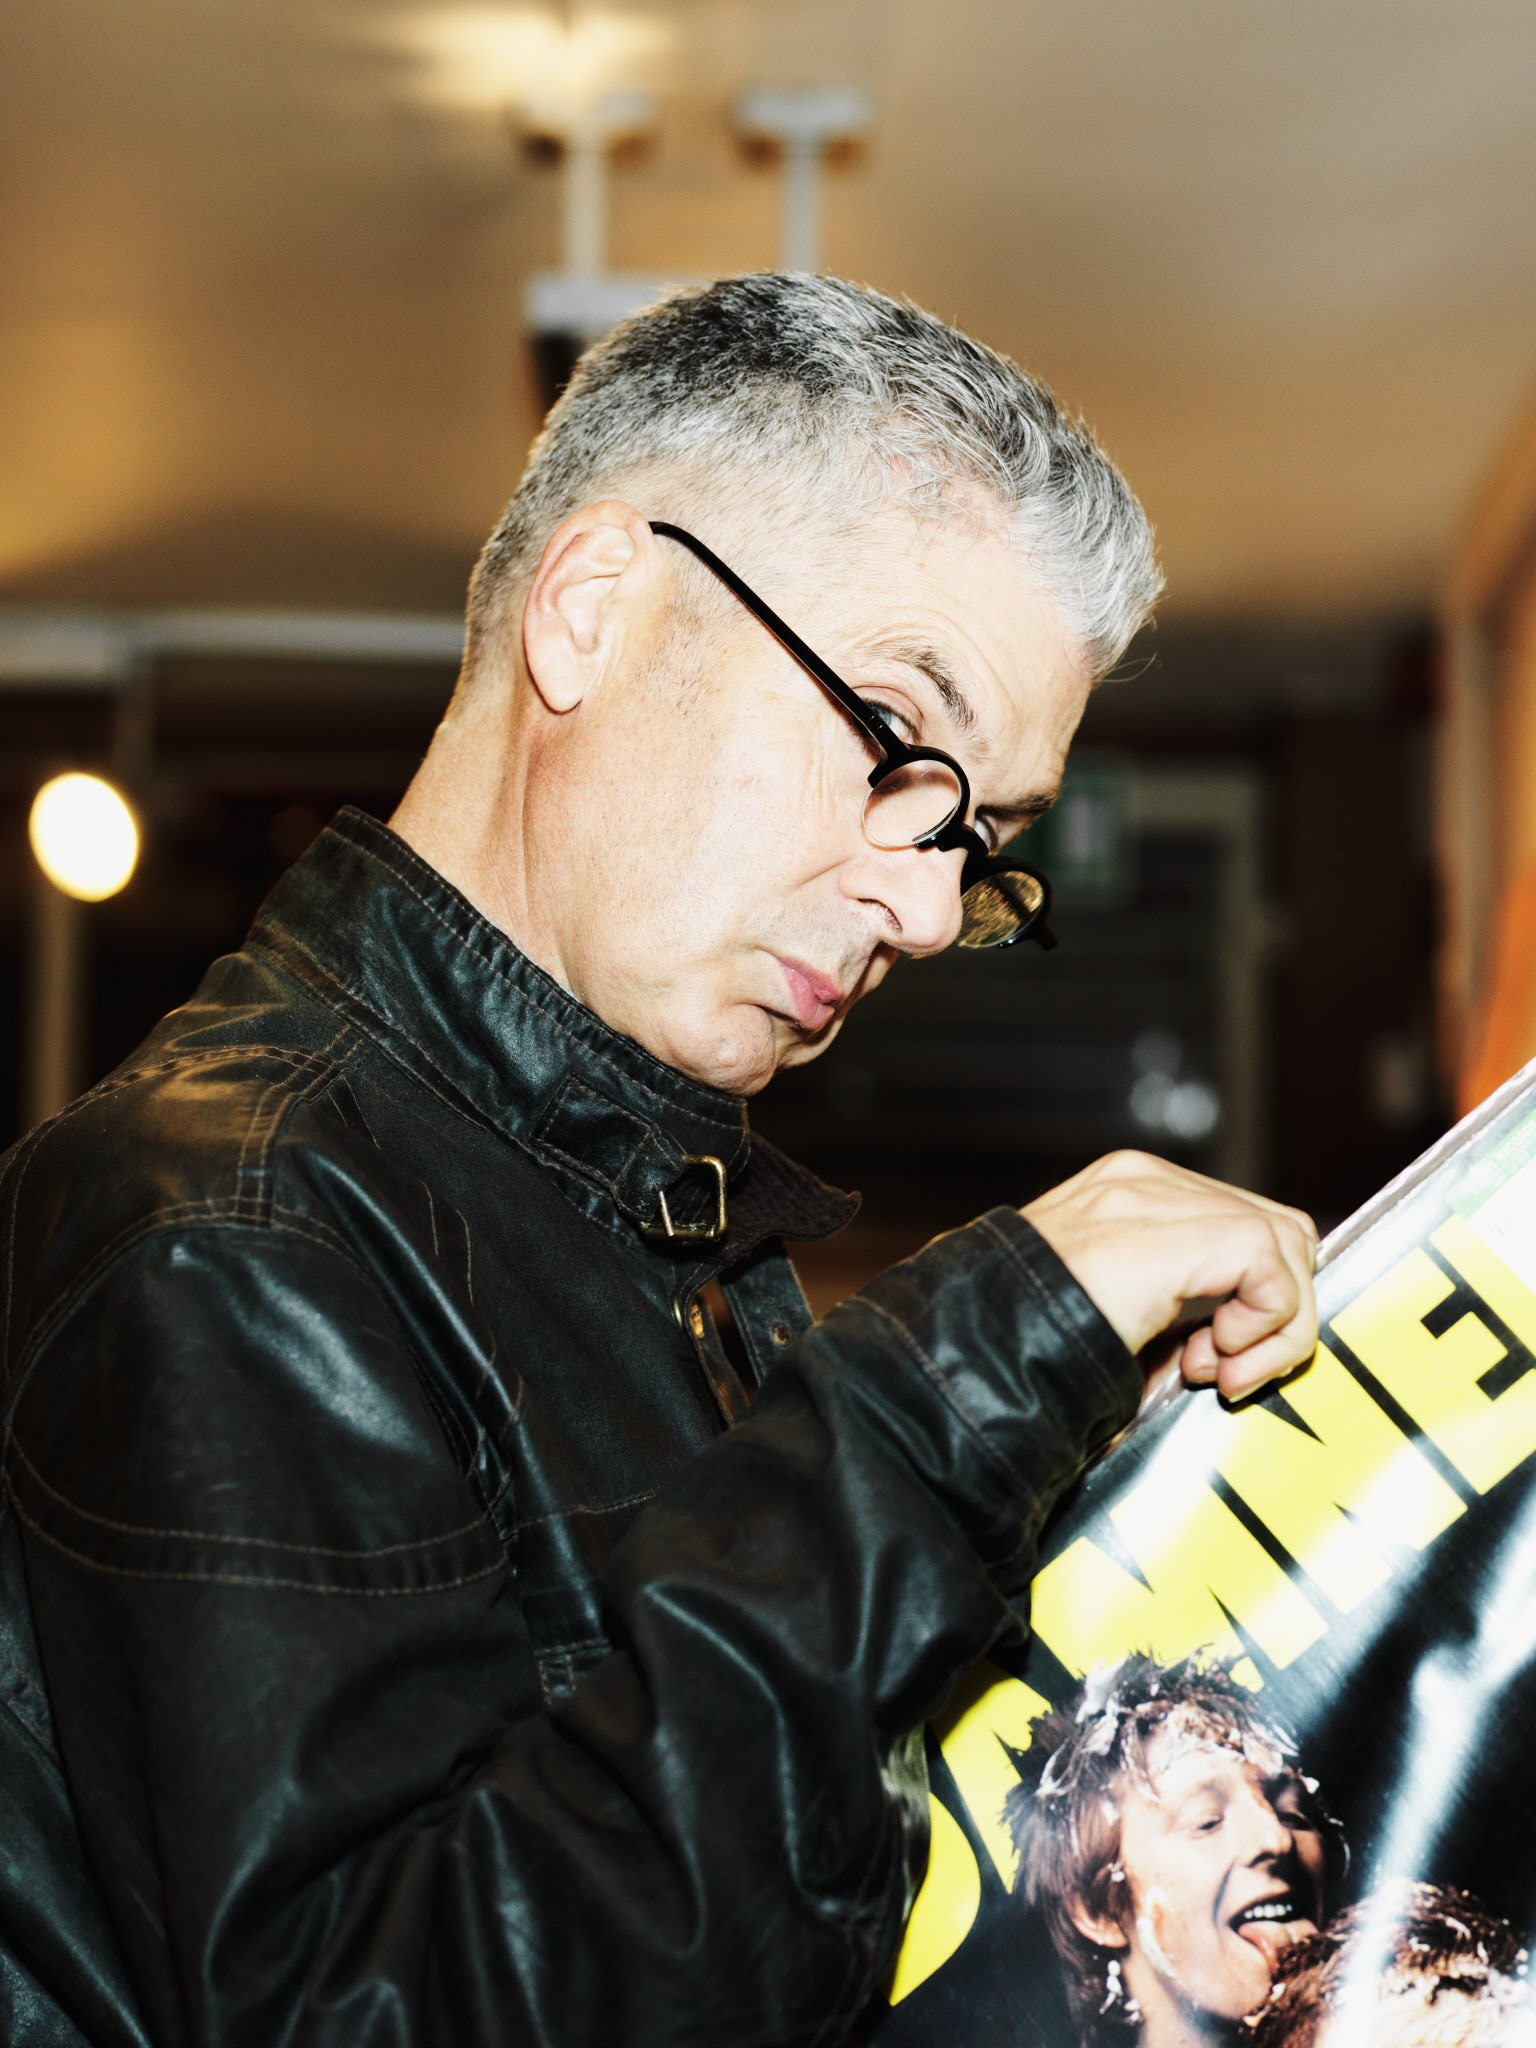 Jon Savage, writer, broadcaster and journalist – photographed in London for Spex